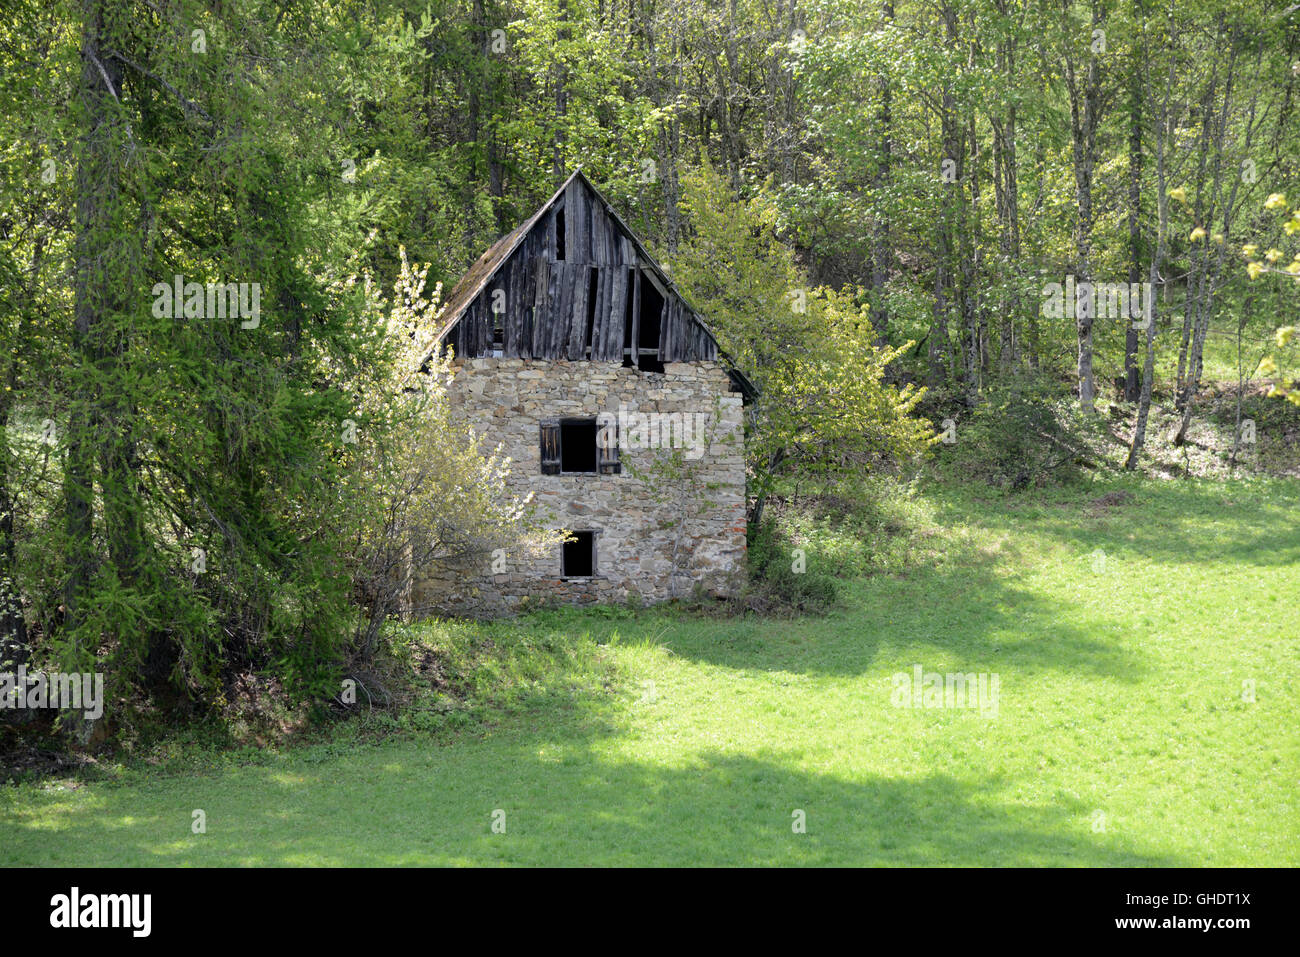 Ruined or Abandoned Stone & Timber Alpine Chalet in the Forest near Colmars-les-Alpes French Alps France - Stock Image